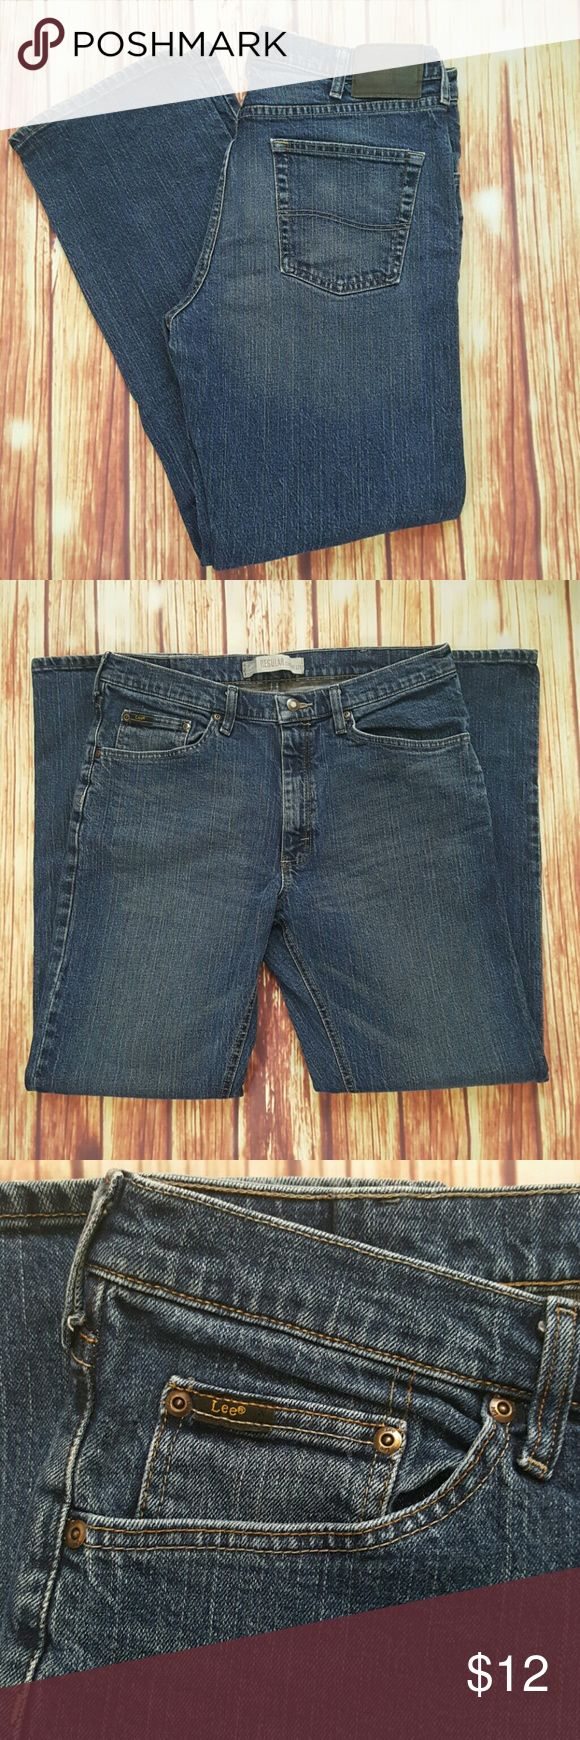 Lee Premium Men's Straight Regular Jeans Size: 34 x 32 In excellent condition  No damages or stains Lee Jeans Straight